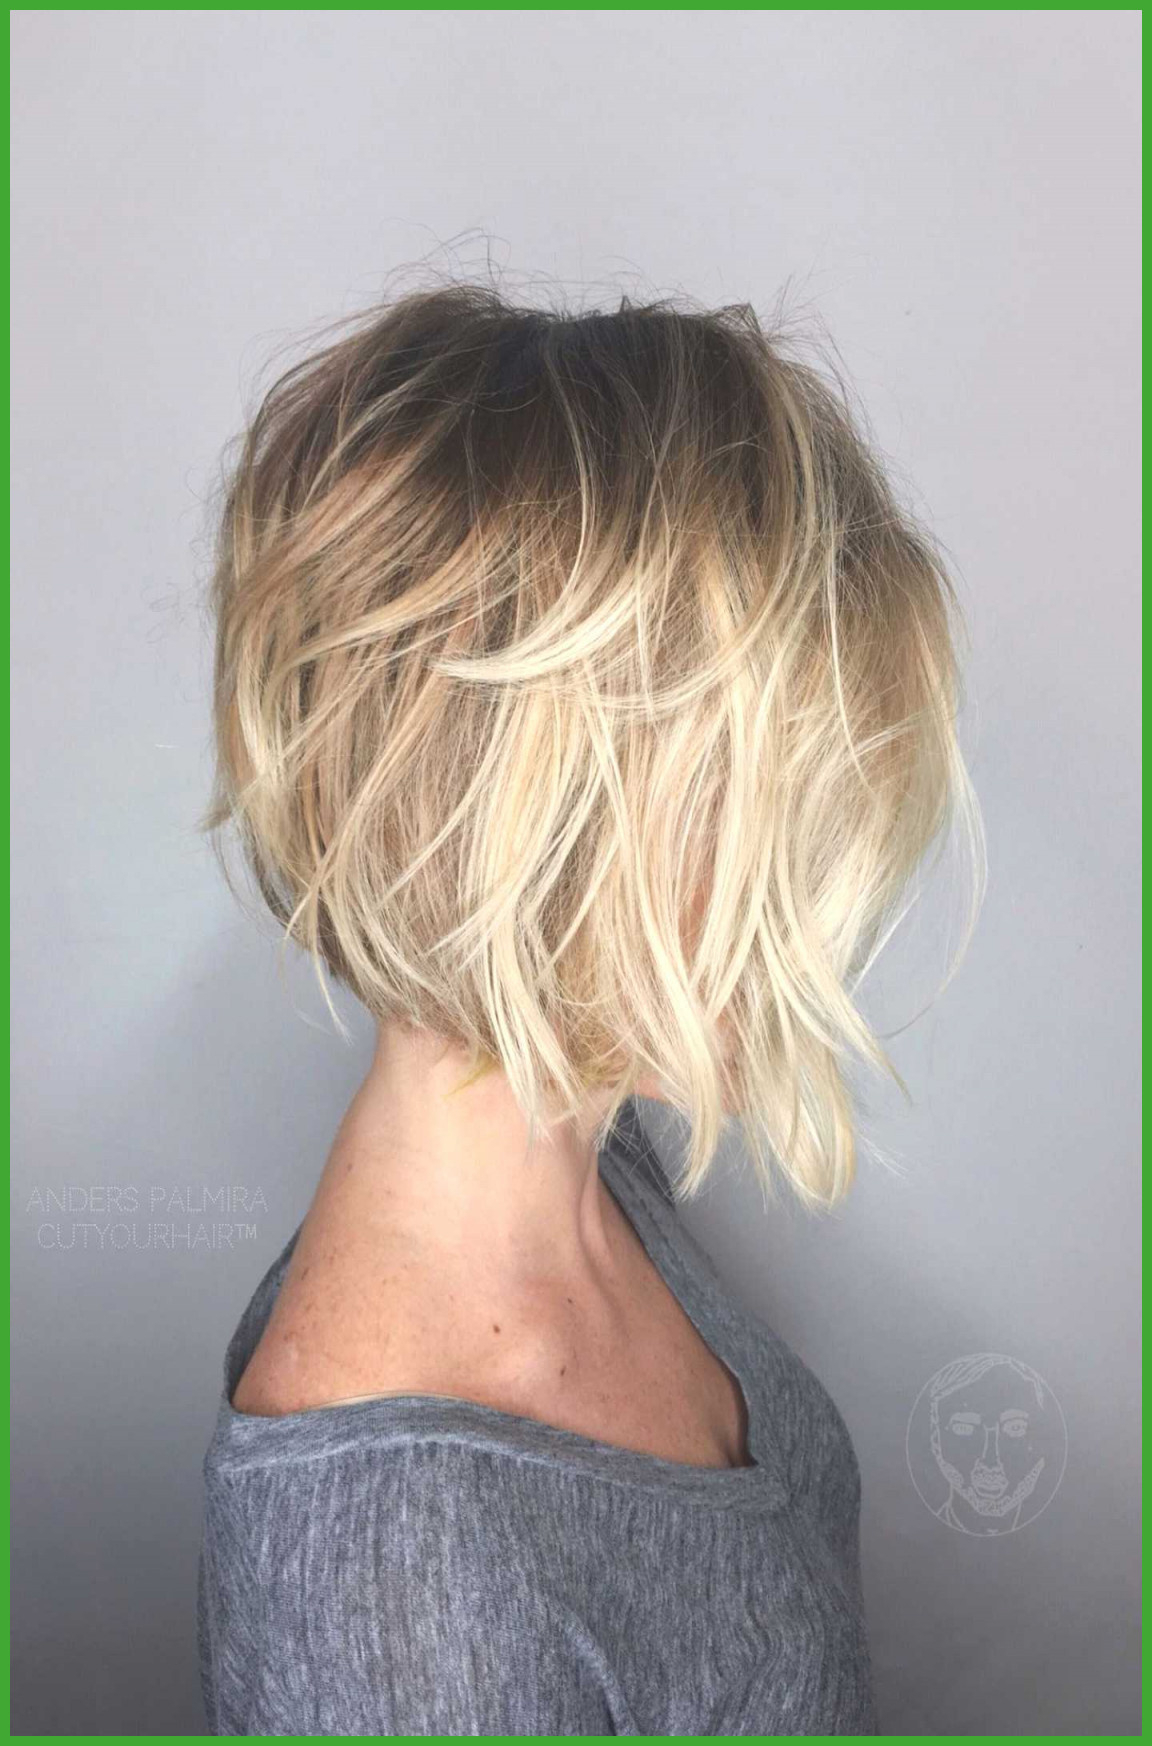 Well Known Smart Short Bob Hairstyles With Choppy Ends Intended For Hairstyles : Choppy Bob Hairstyles Smart 70 Fabulous Choppy (View 16 of 20)